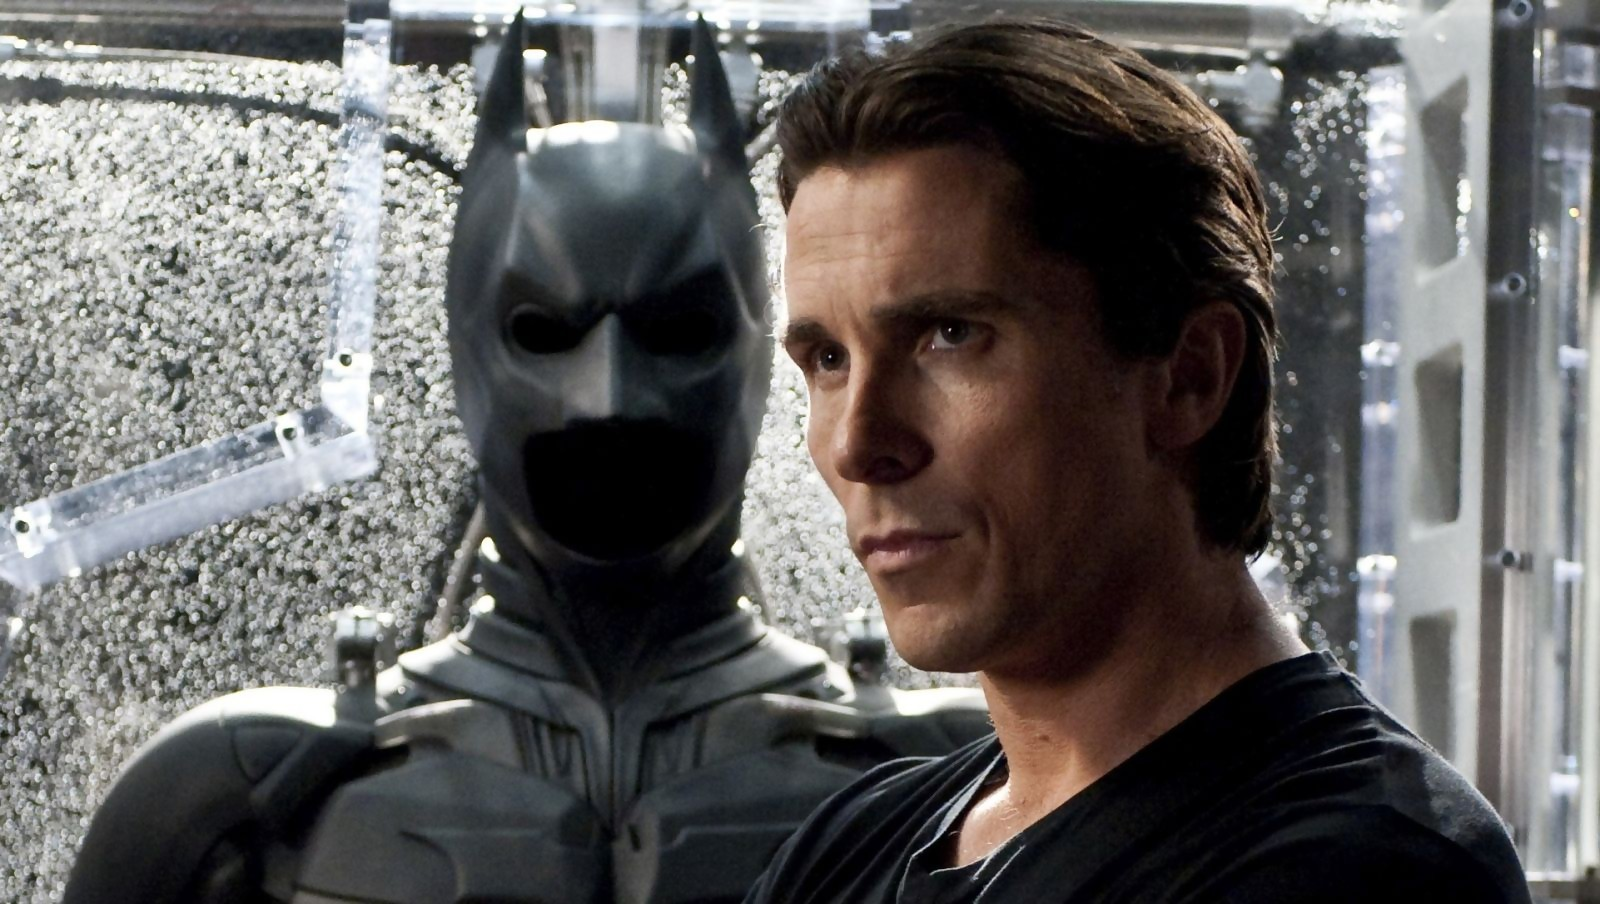 Photo of 8 Batman Actors Ranked From Worst To Best